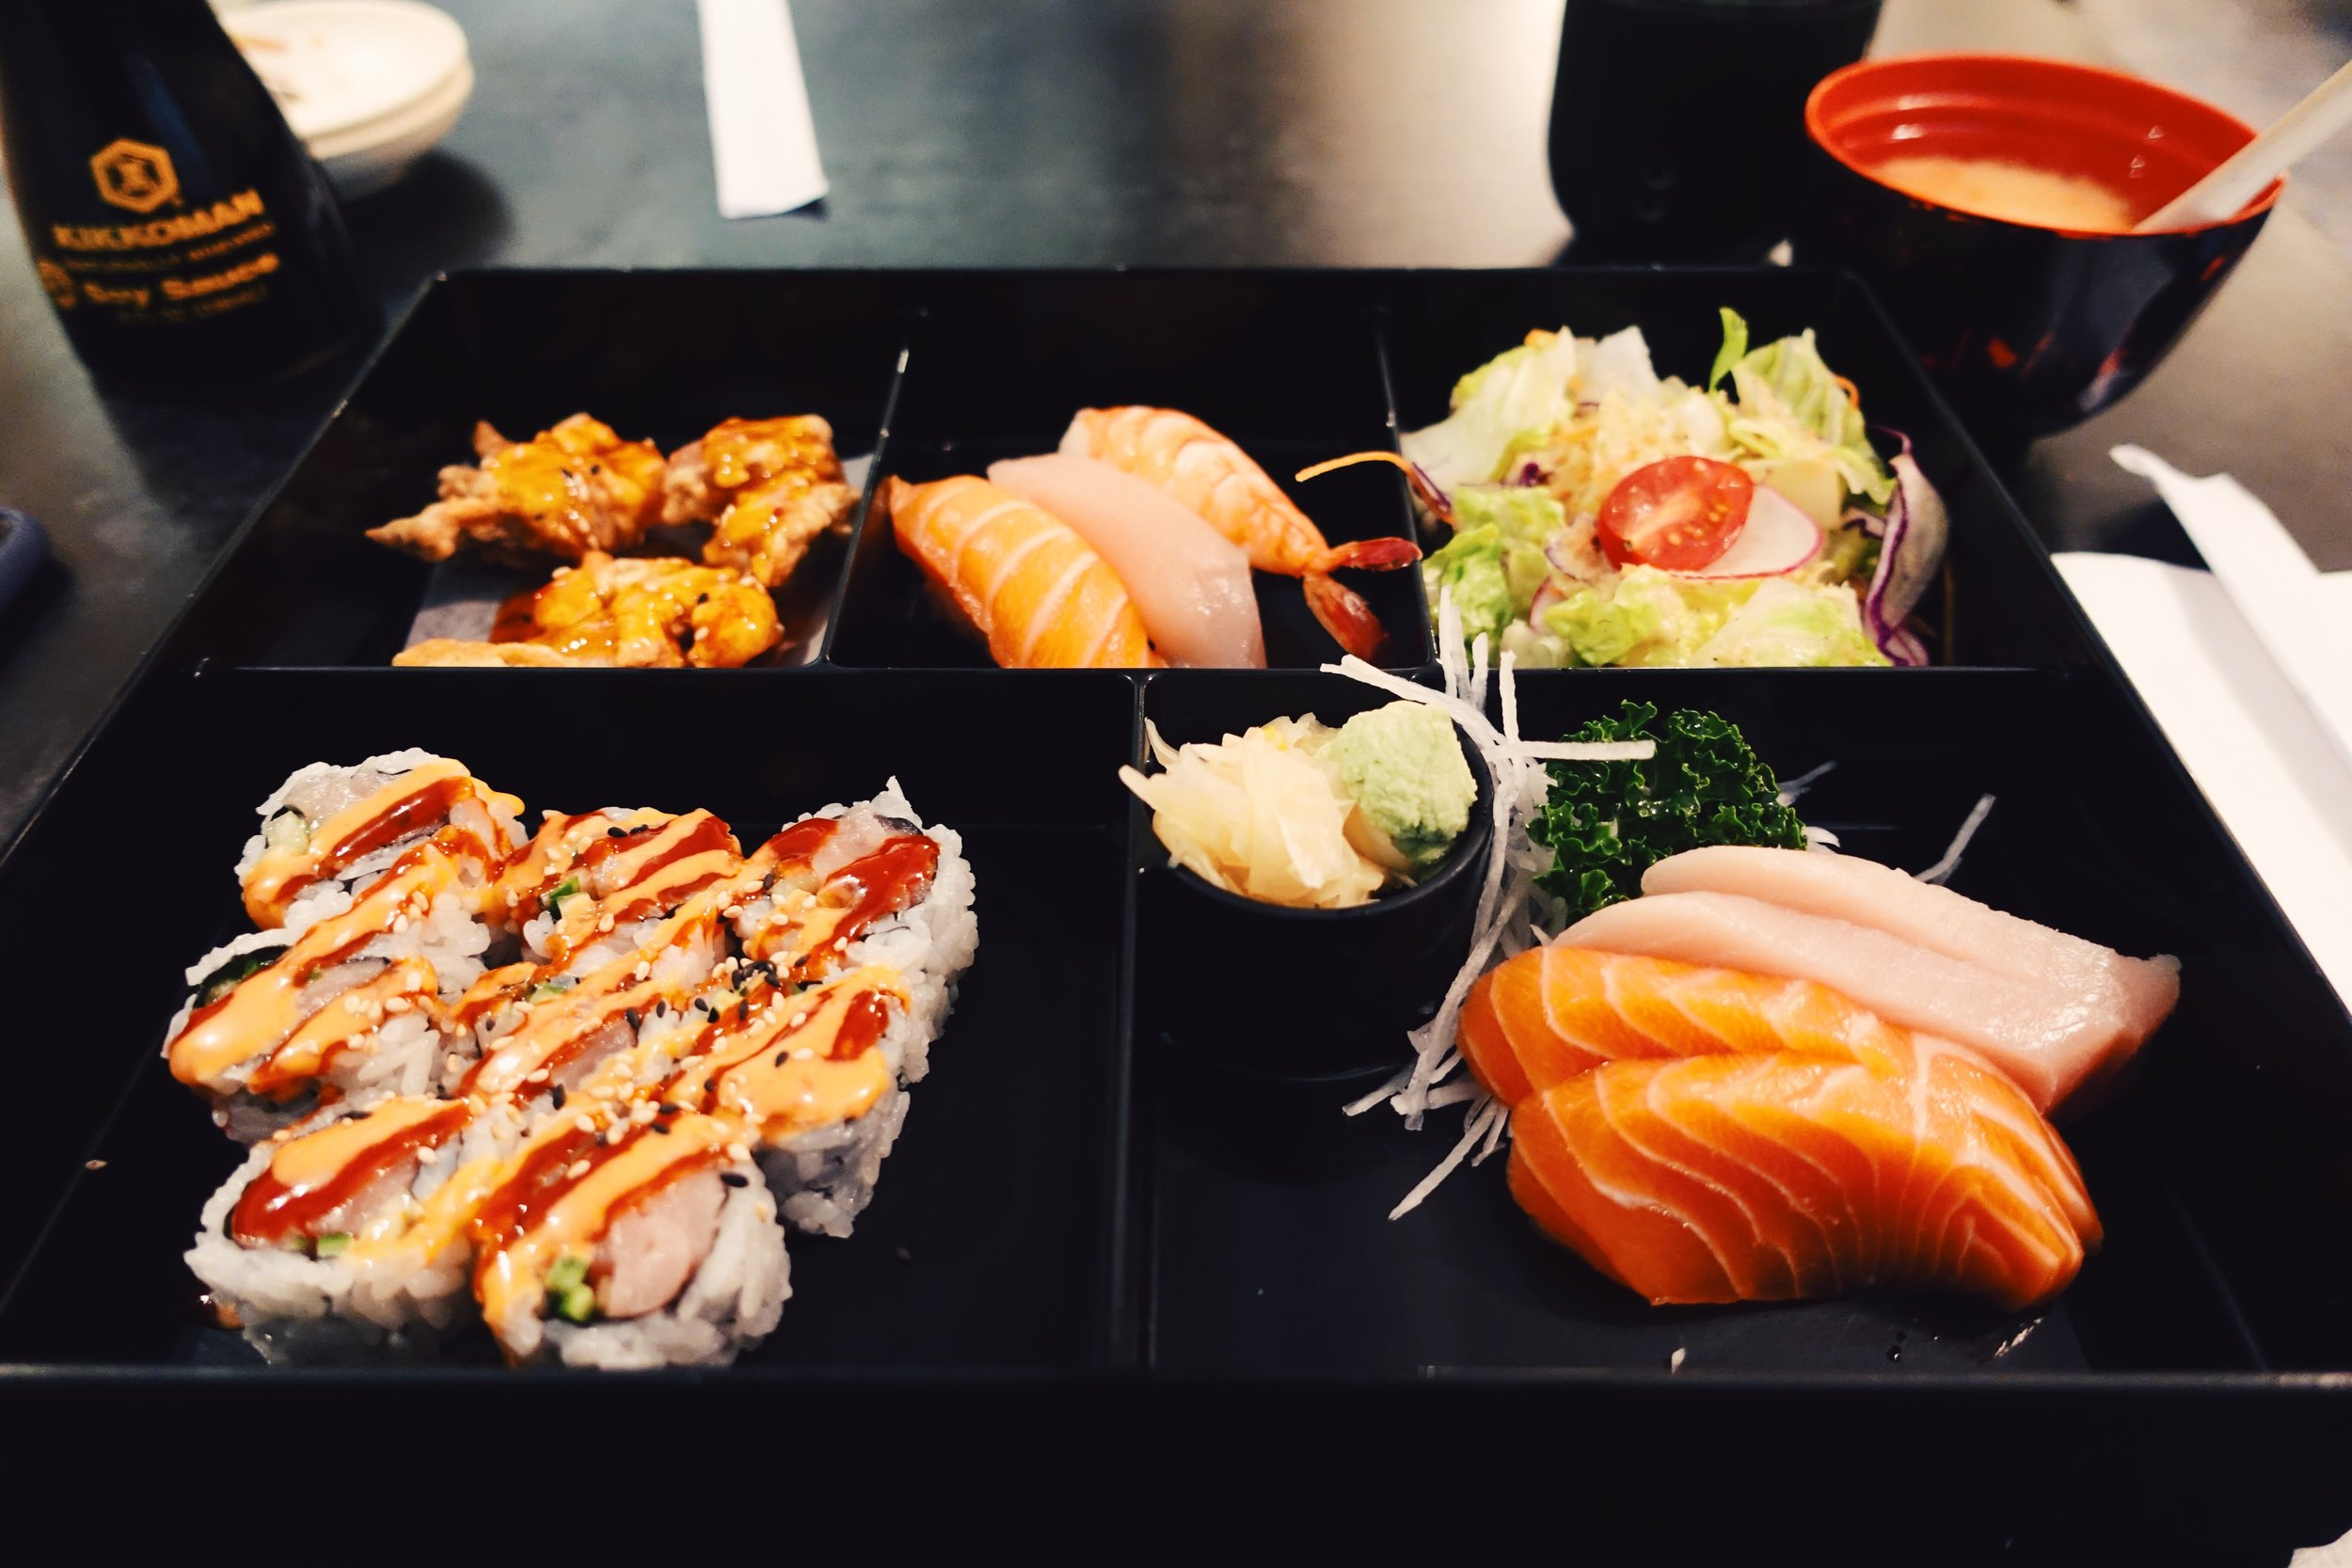 Sushi and Sashimi Bento - From top left - Daily feature, sweet Thai chicken nuggets, nigiri, salad, spicy tuna roll, and sashimi. Comes with miso soup.